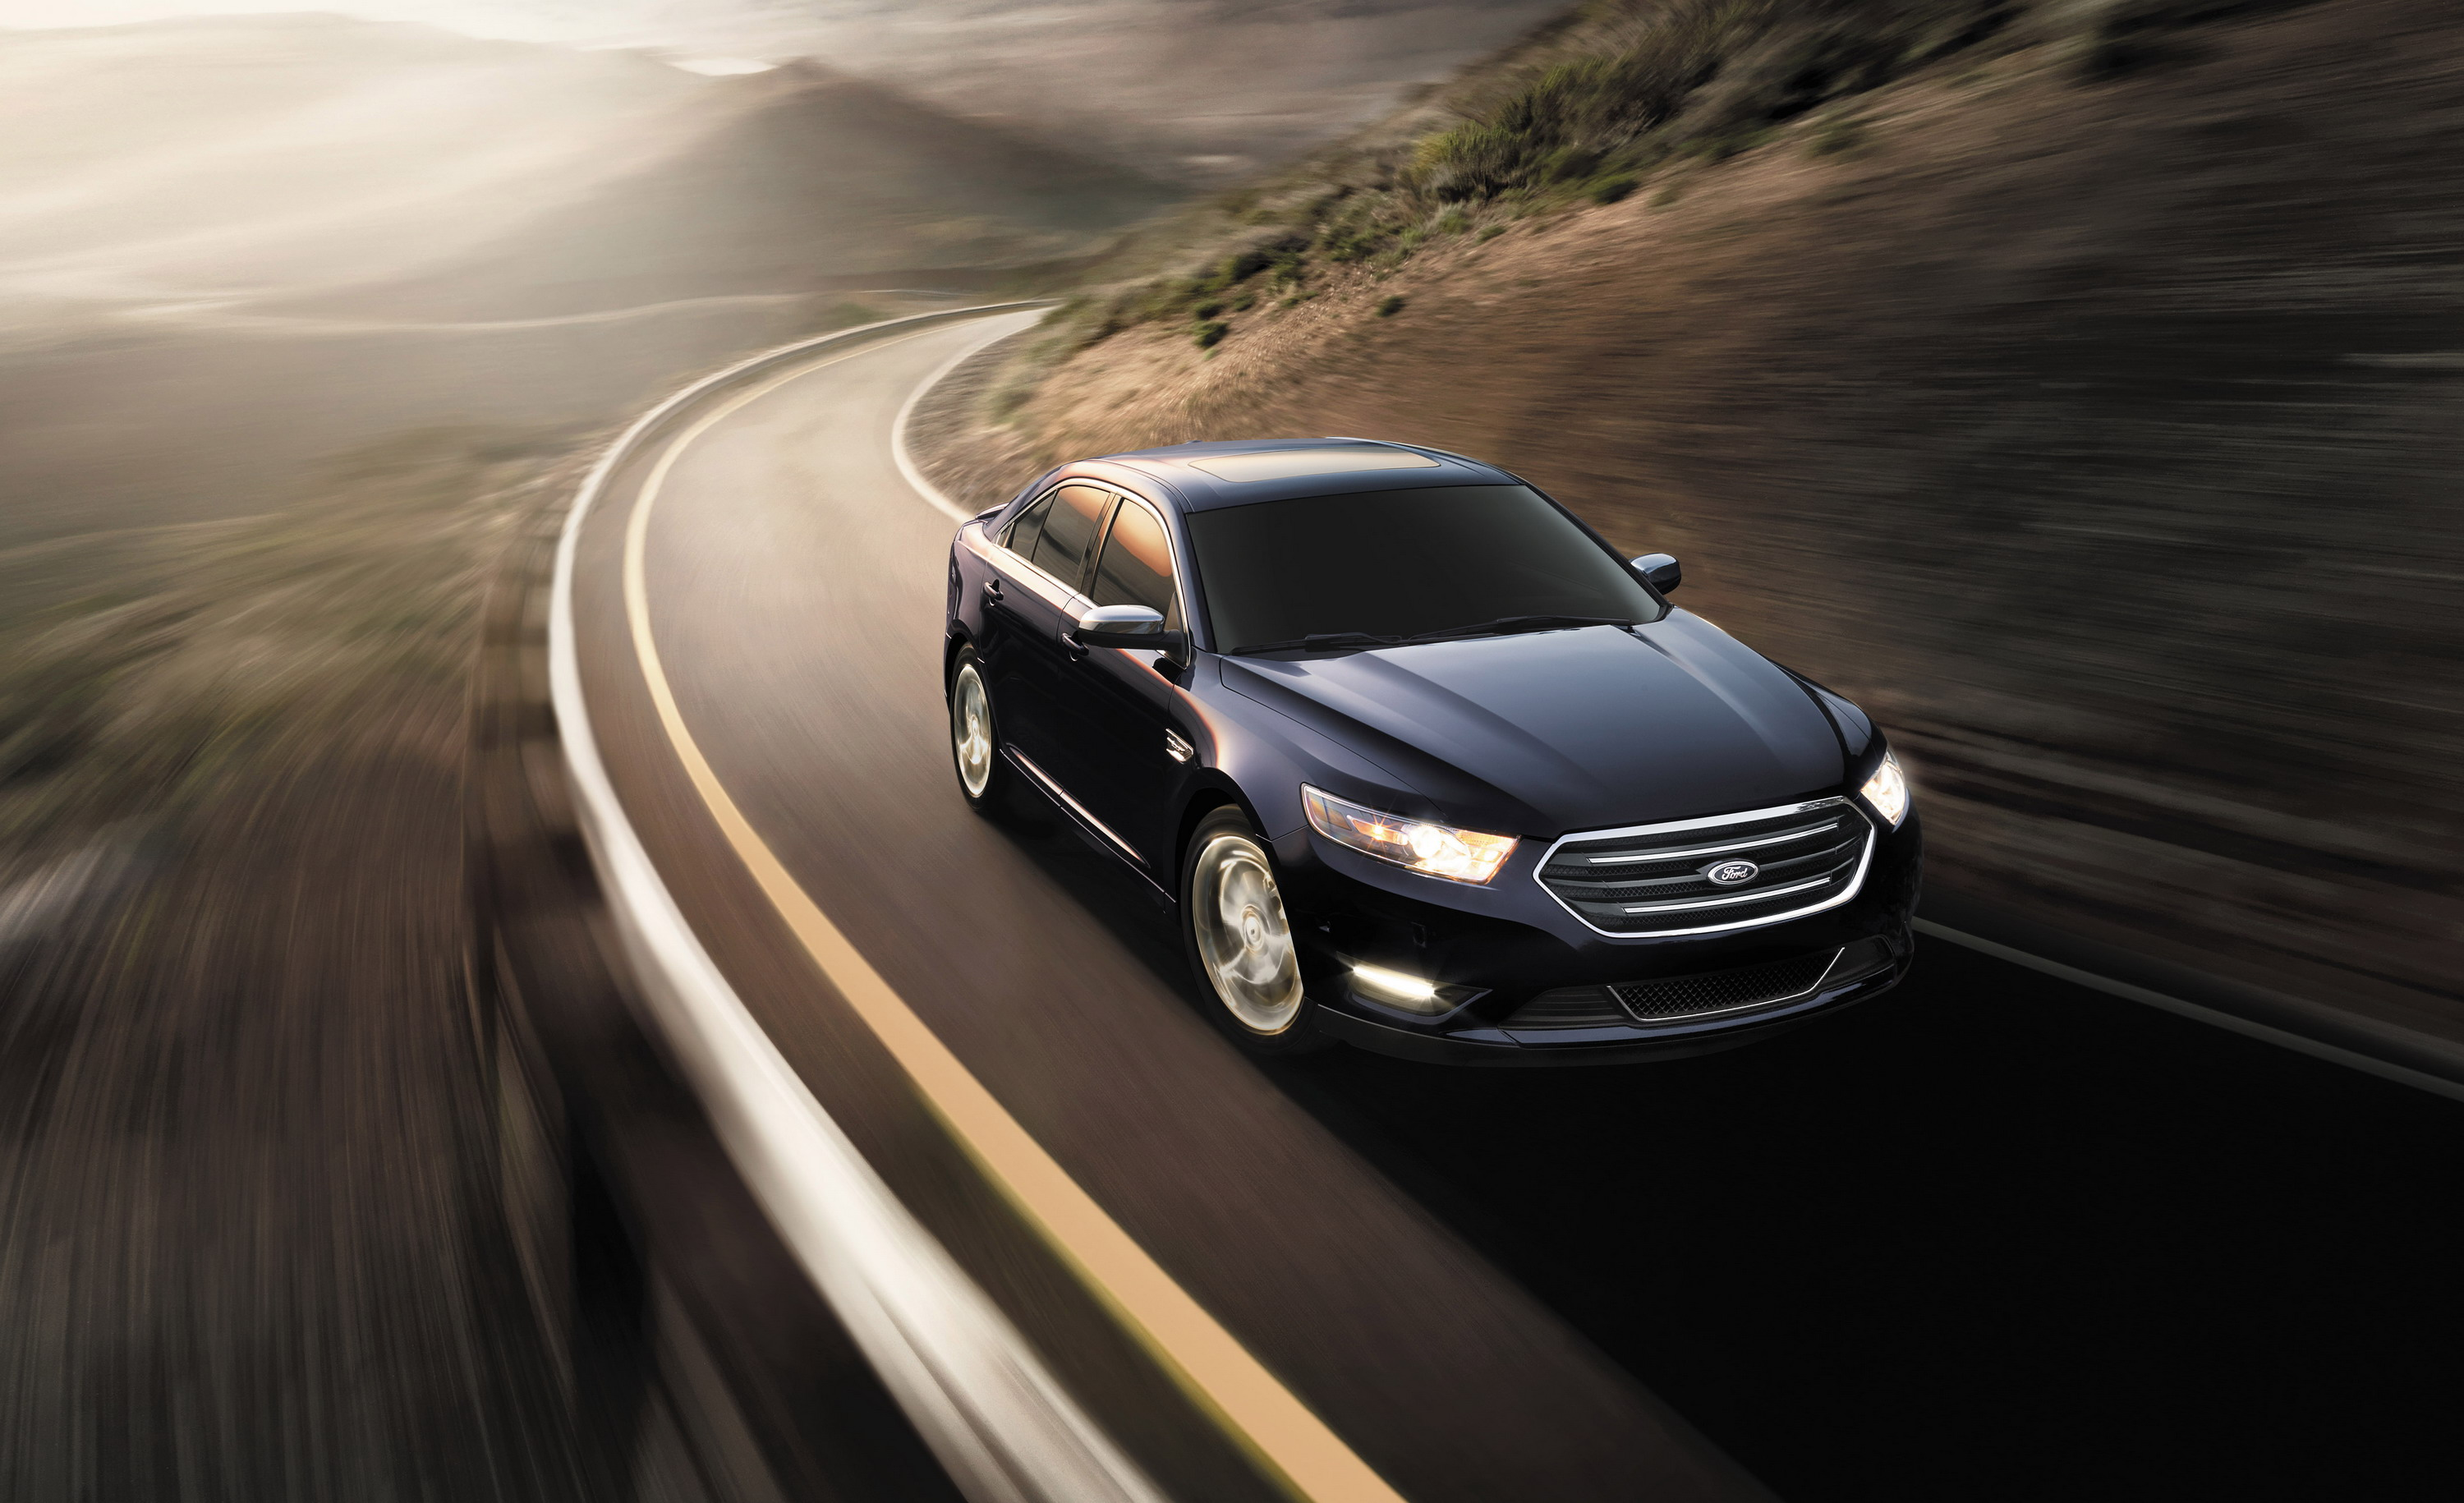 Car Legacy Wallpaper Ford To Kill Off The Fiesta And Taurus In The U S For